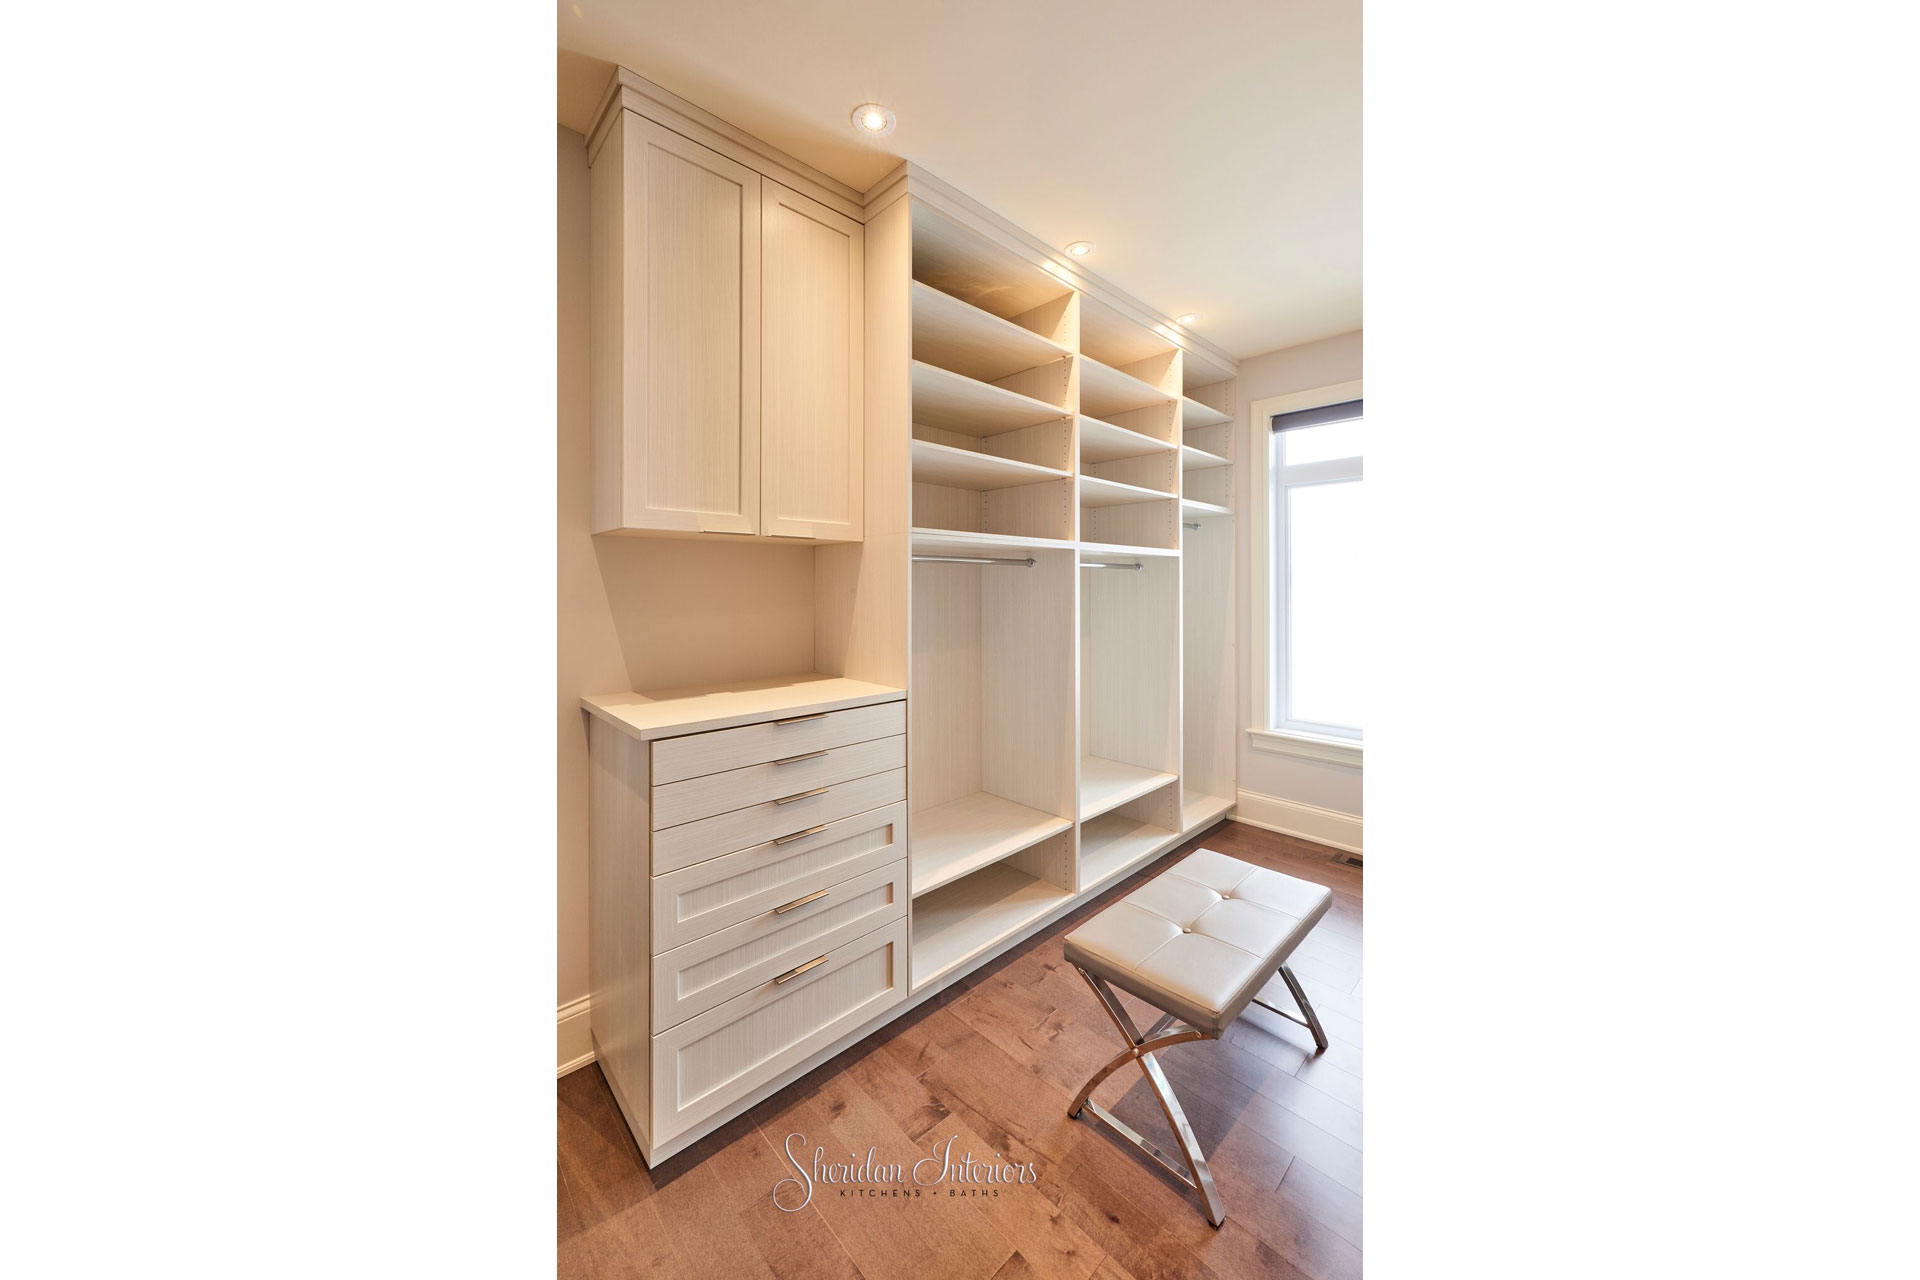 Master Bedroom Walk-in Closet Light wood tone - Sheridan Interiors